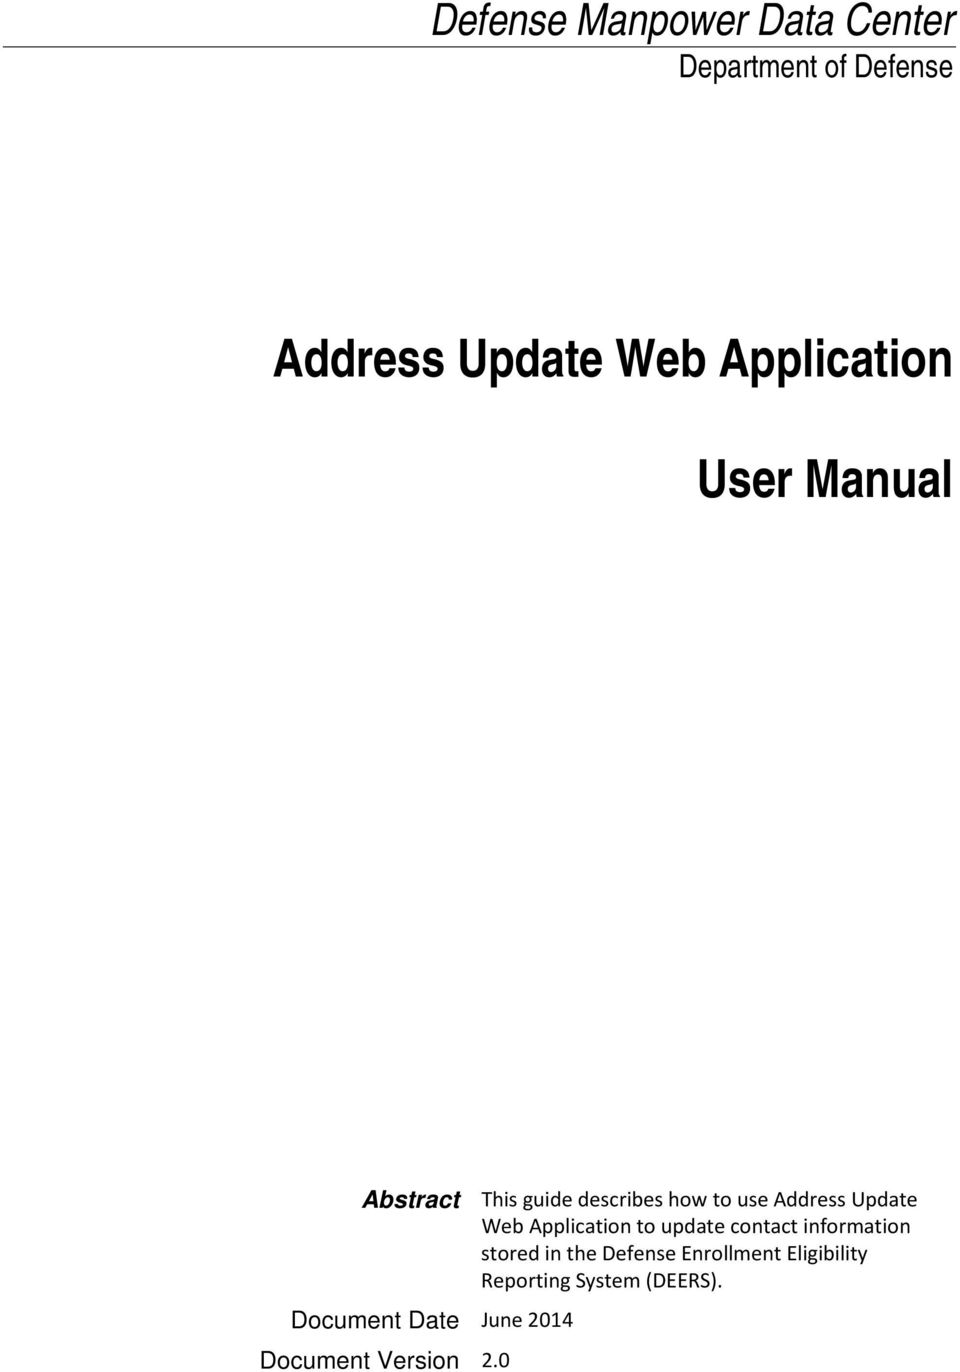 Update Web Application to update contact information stored in the Defense